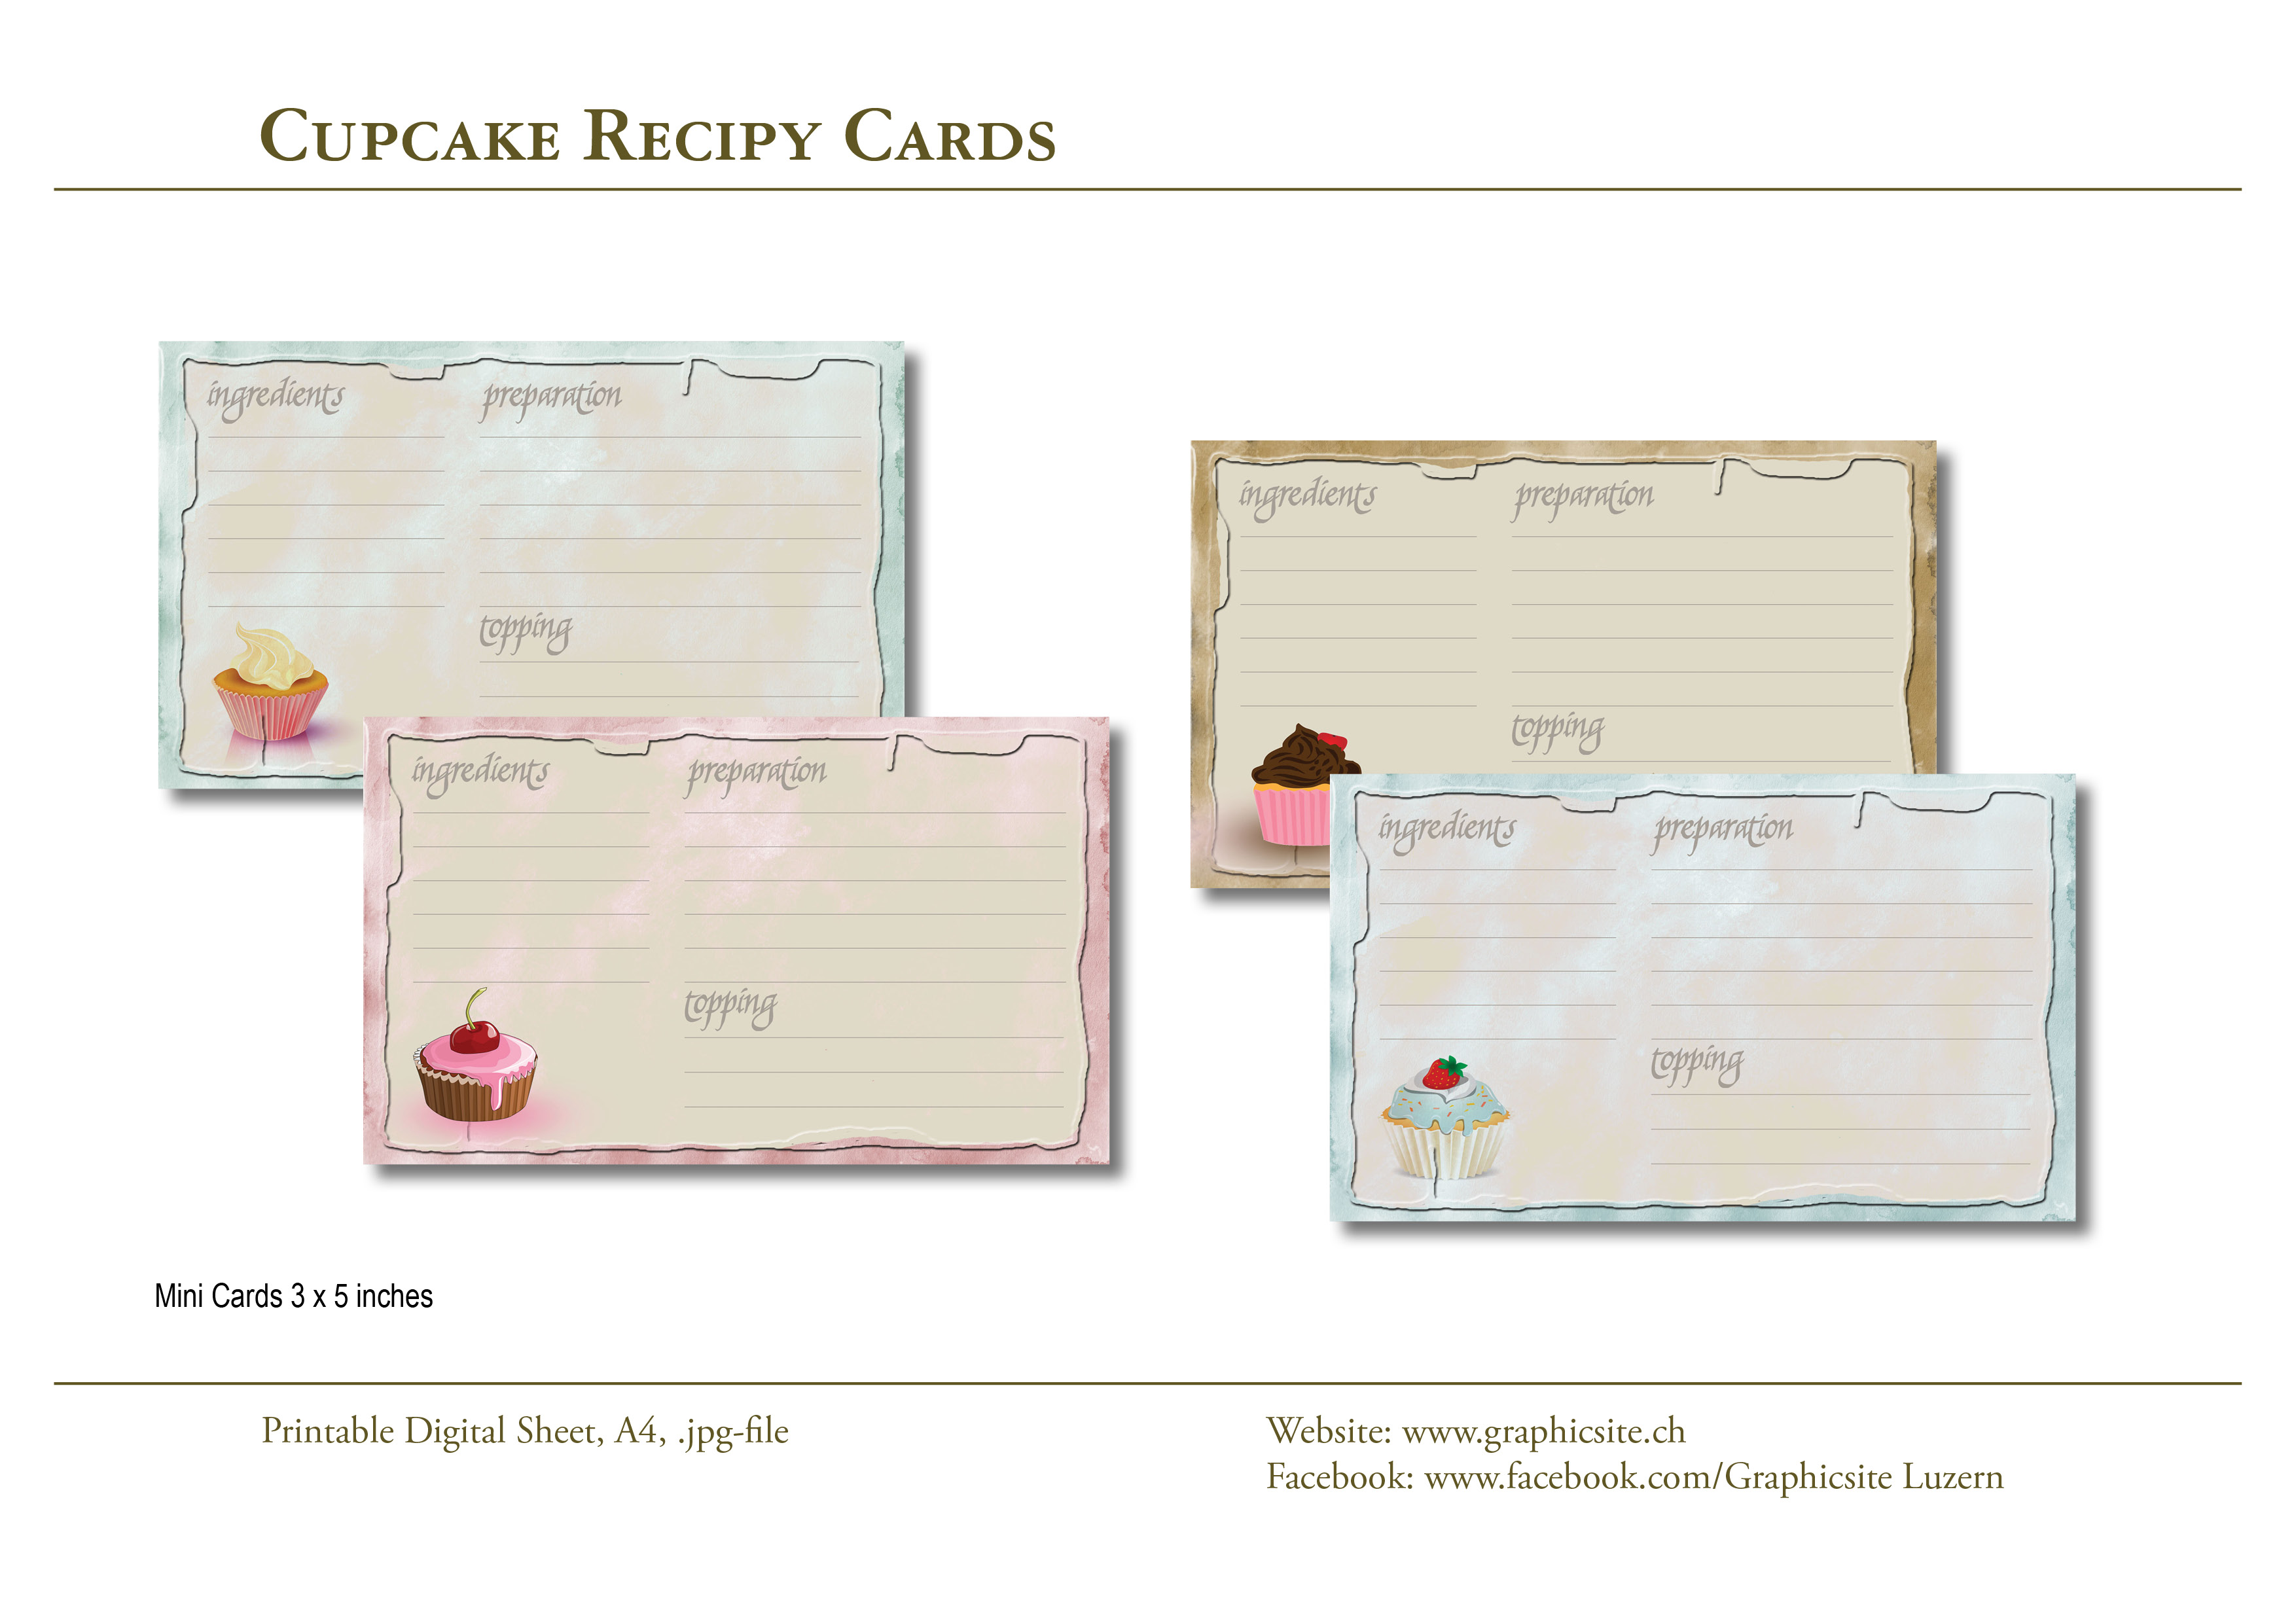 Printable Digital Sheets - 3x5_images - Cupcake Recipes - #cupcakes, #recipe, #cards, #crafts, #papers,